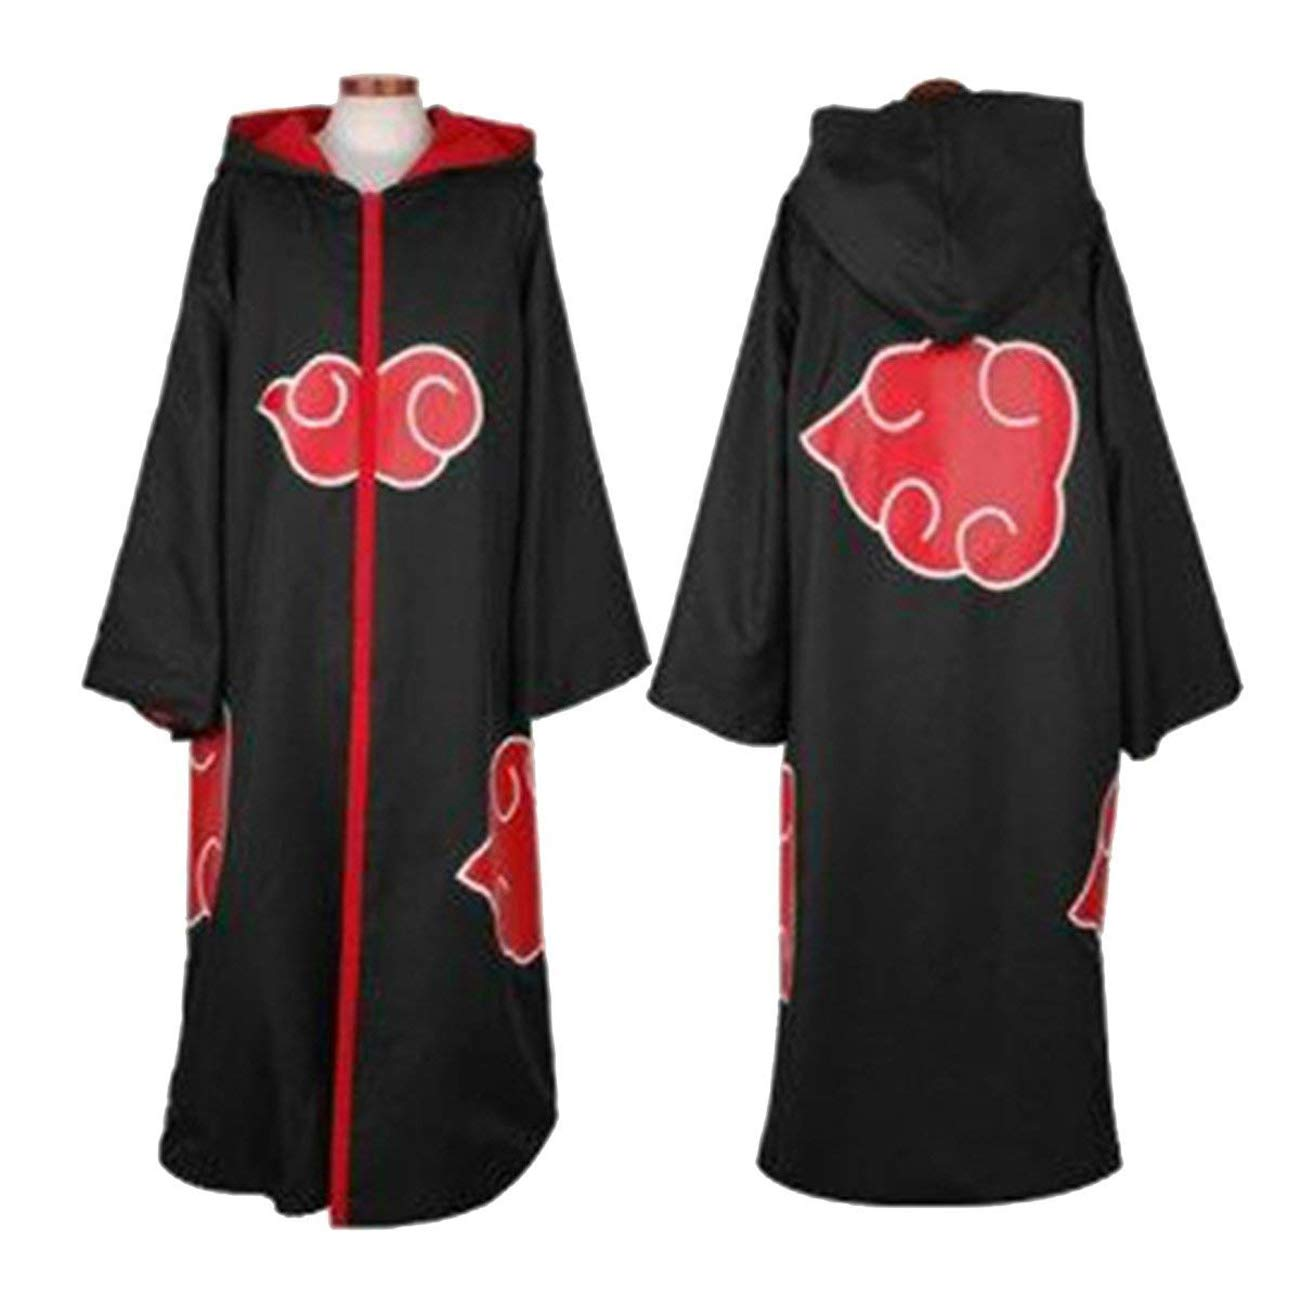 Aries Tuttle The Naruto Unisex Akatsuki Cloud Cosplay Costume Uniform Cloak Hoodie Robe Outerwear